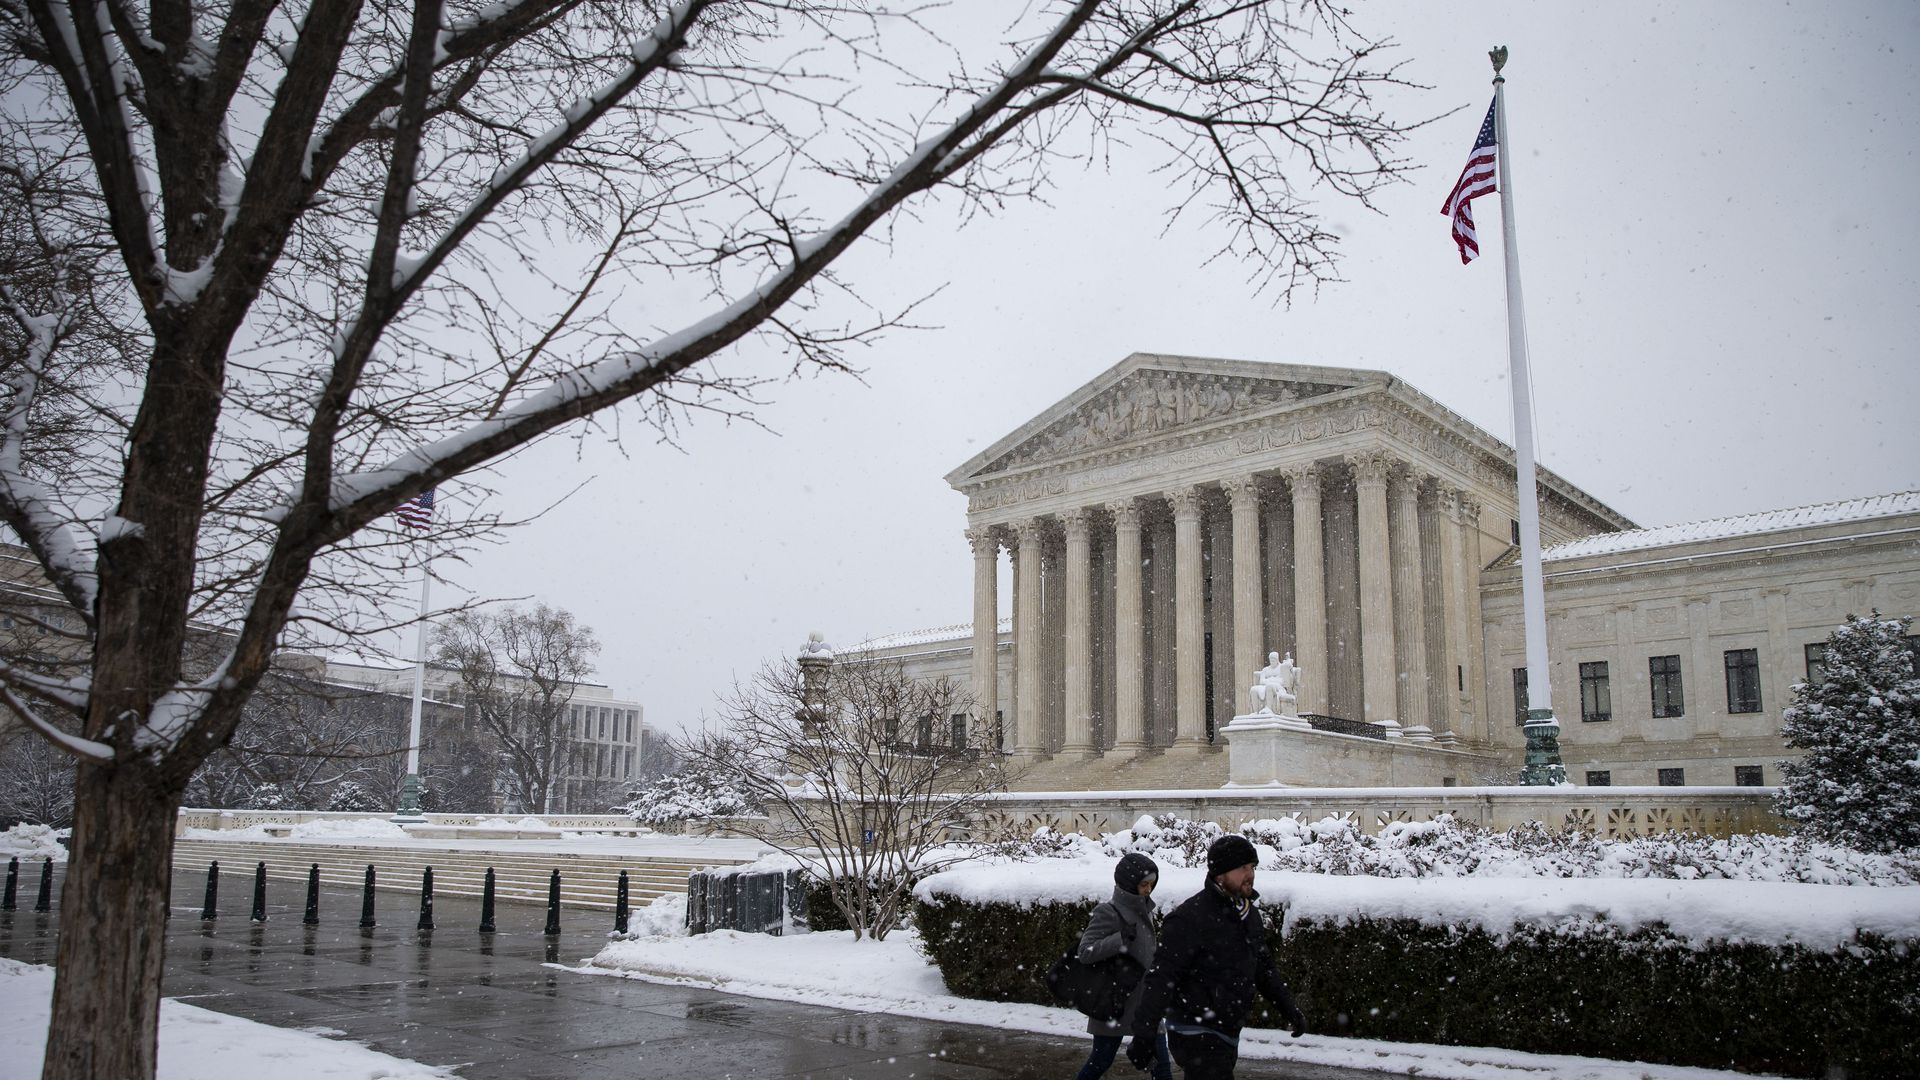 In this image, pedestrians walk on a snowy sidewalk in front of the Supreme Court.